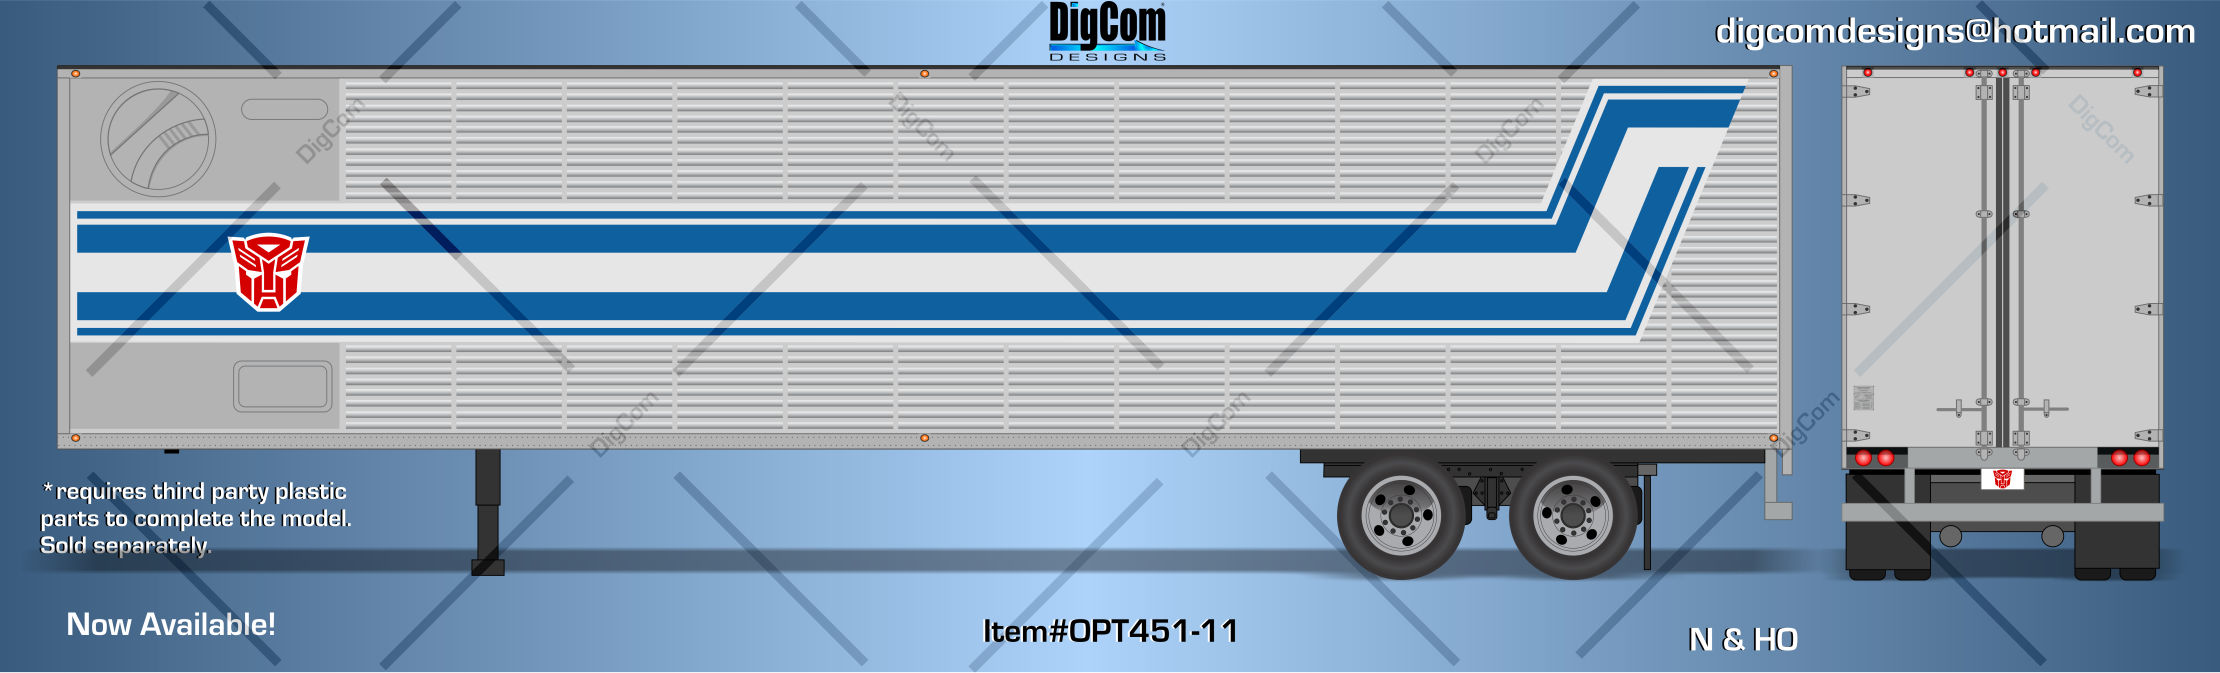 OPTIMUS 1 TRAILER DESIGN.jpg